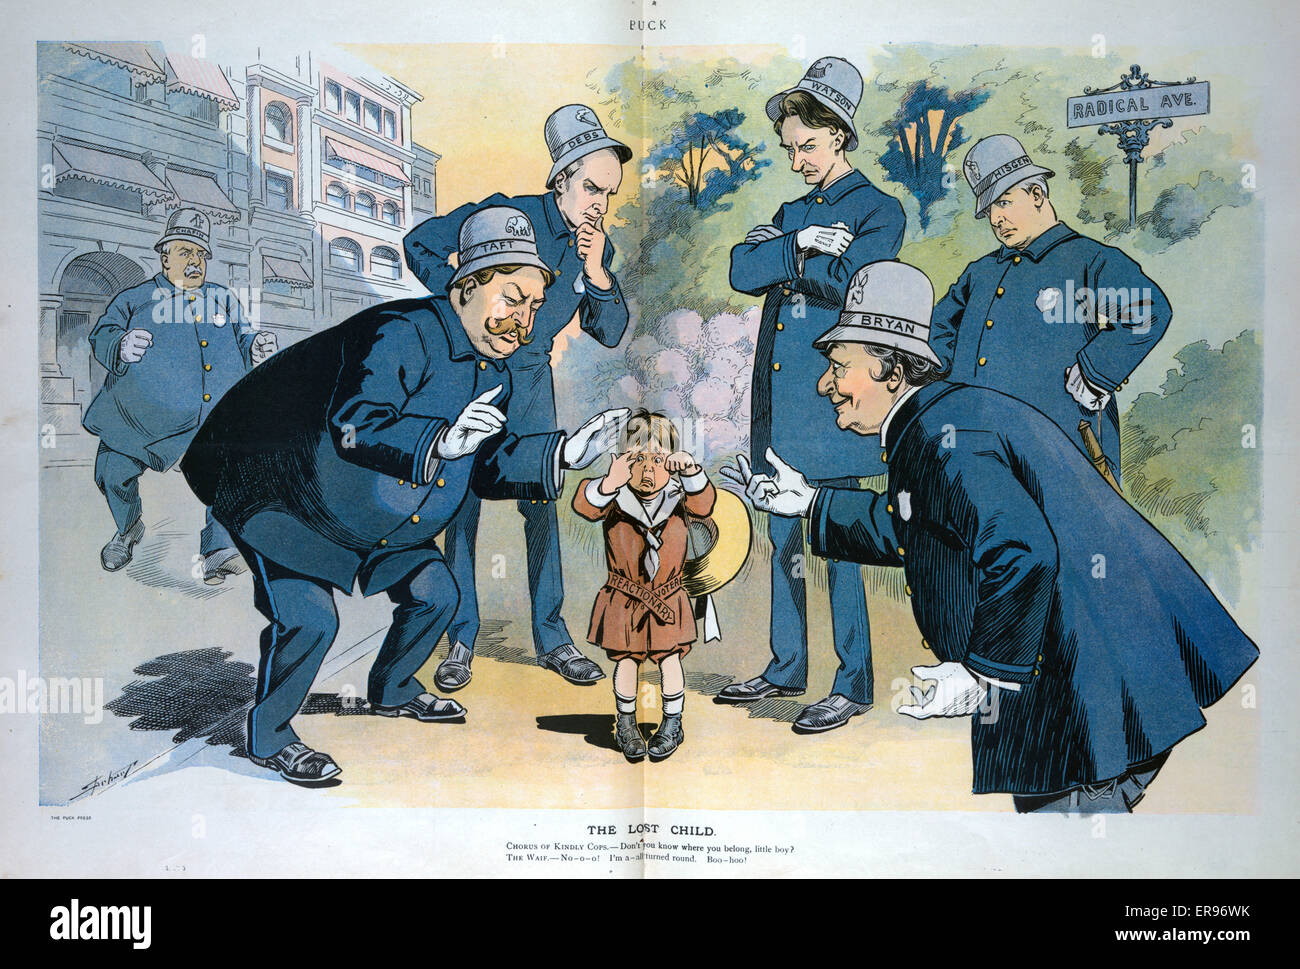 The lost child. Illustration shows six policemen labeled Chafin, Taft, Debs, Watson, Hisgen, and Bryan gathering - Stock Image